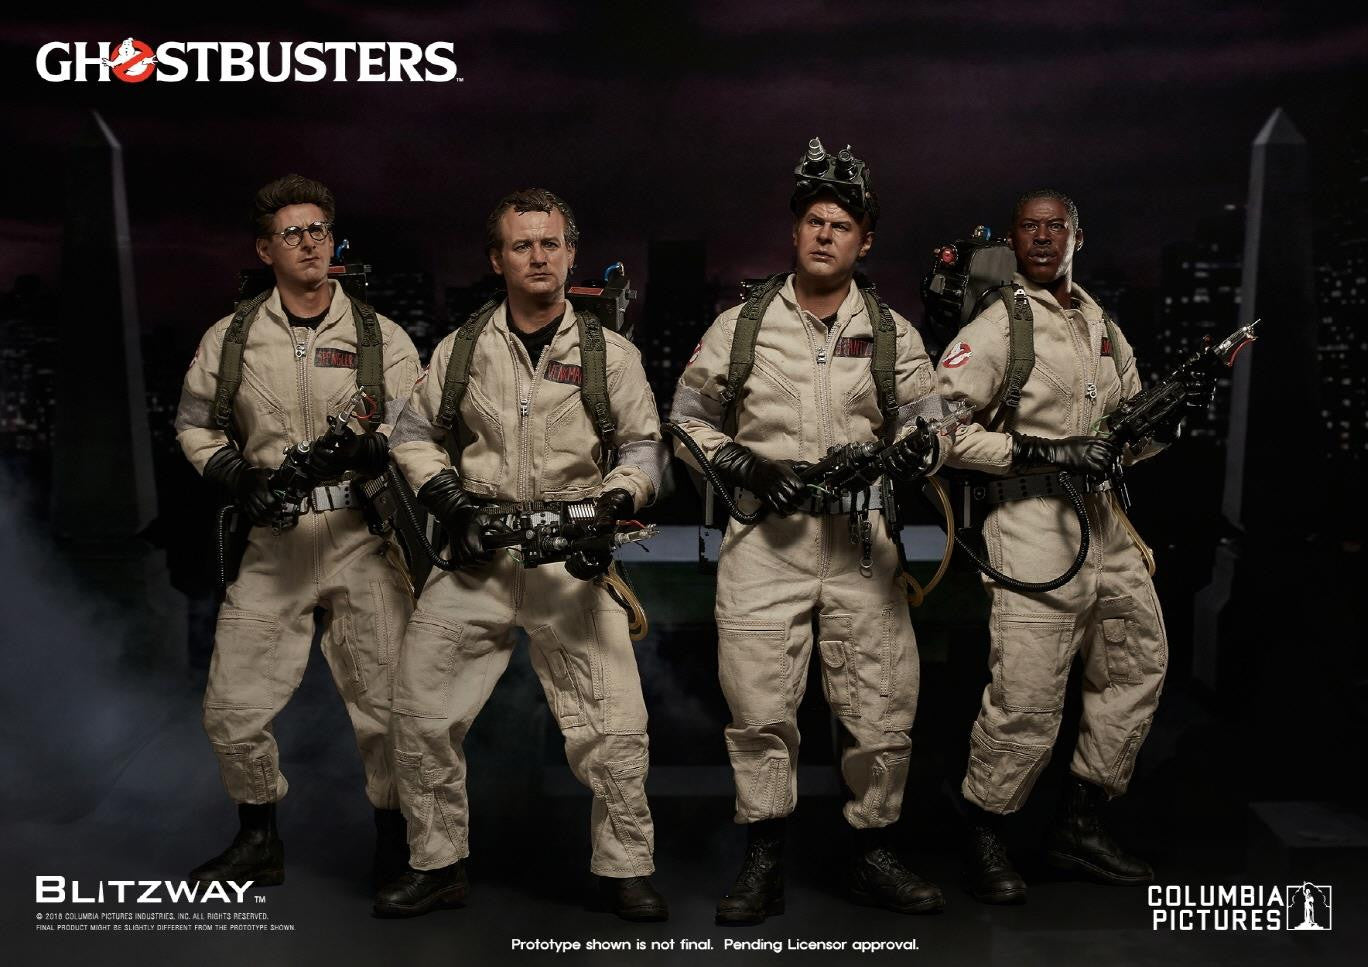 Blitzway - Ghostbusters 1984 Special Pack - Marvelous Toys - 7